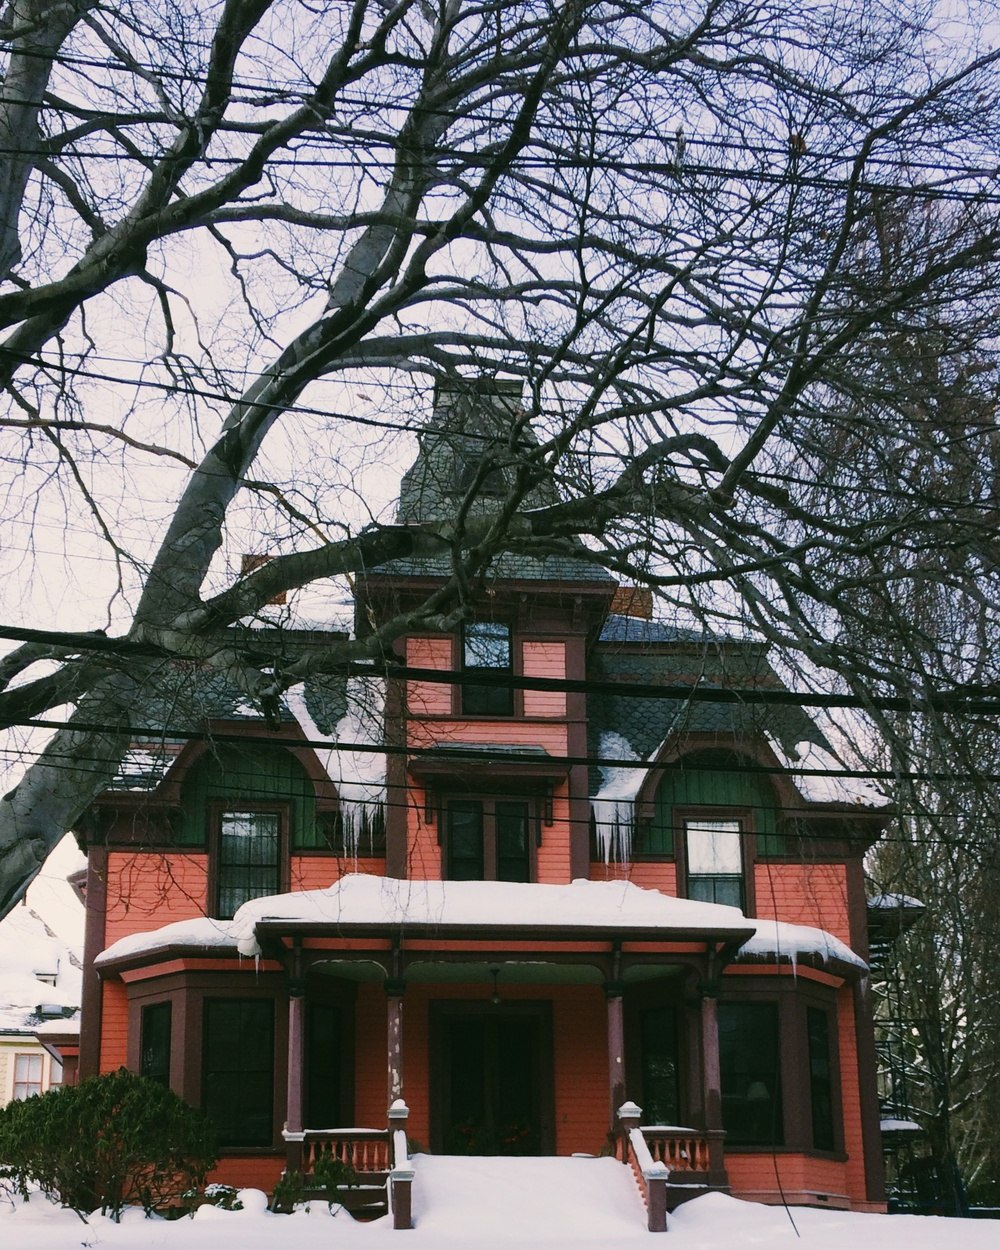 One of many beautiful Victorian houses in Jamaica Plain, MA.